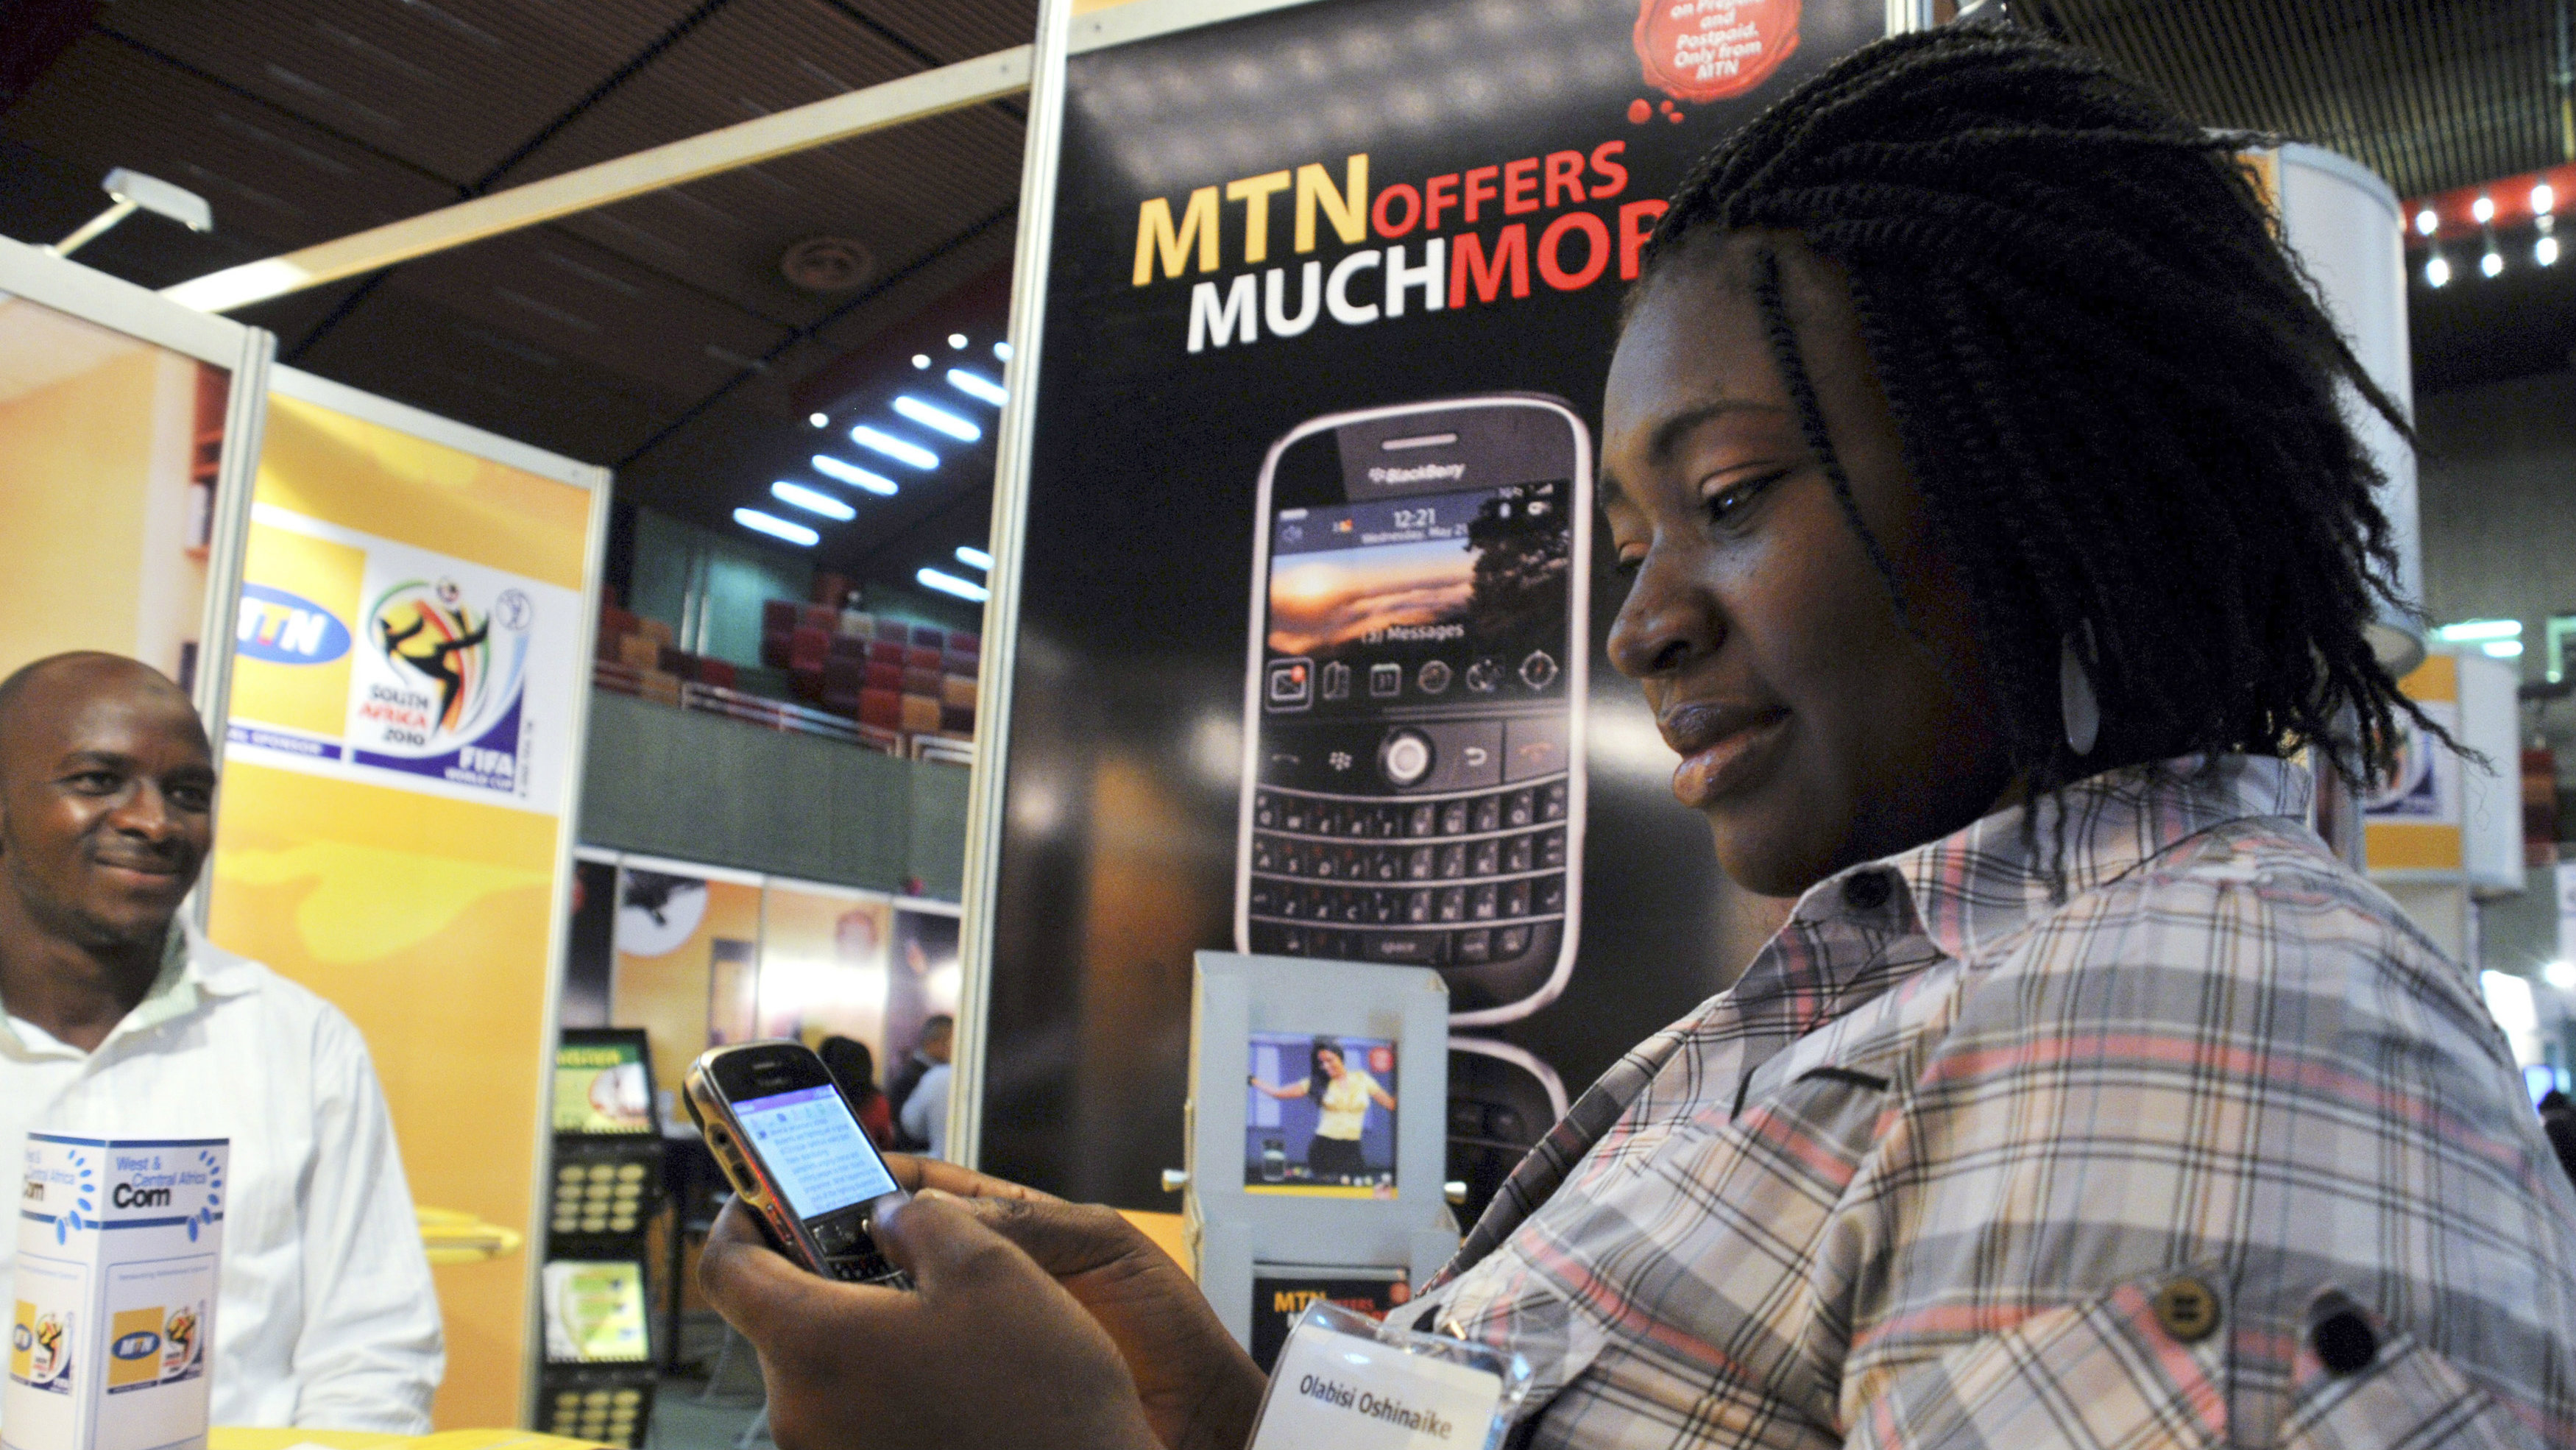 A delegate checks a blackberry handset at an exhibition stand during the West & Central Africa Com conference in Nigeria's capital Abuja, June 18, 2009.